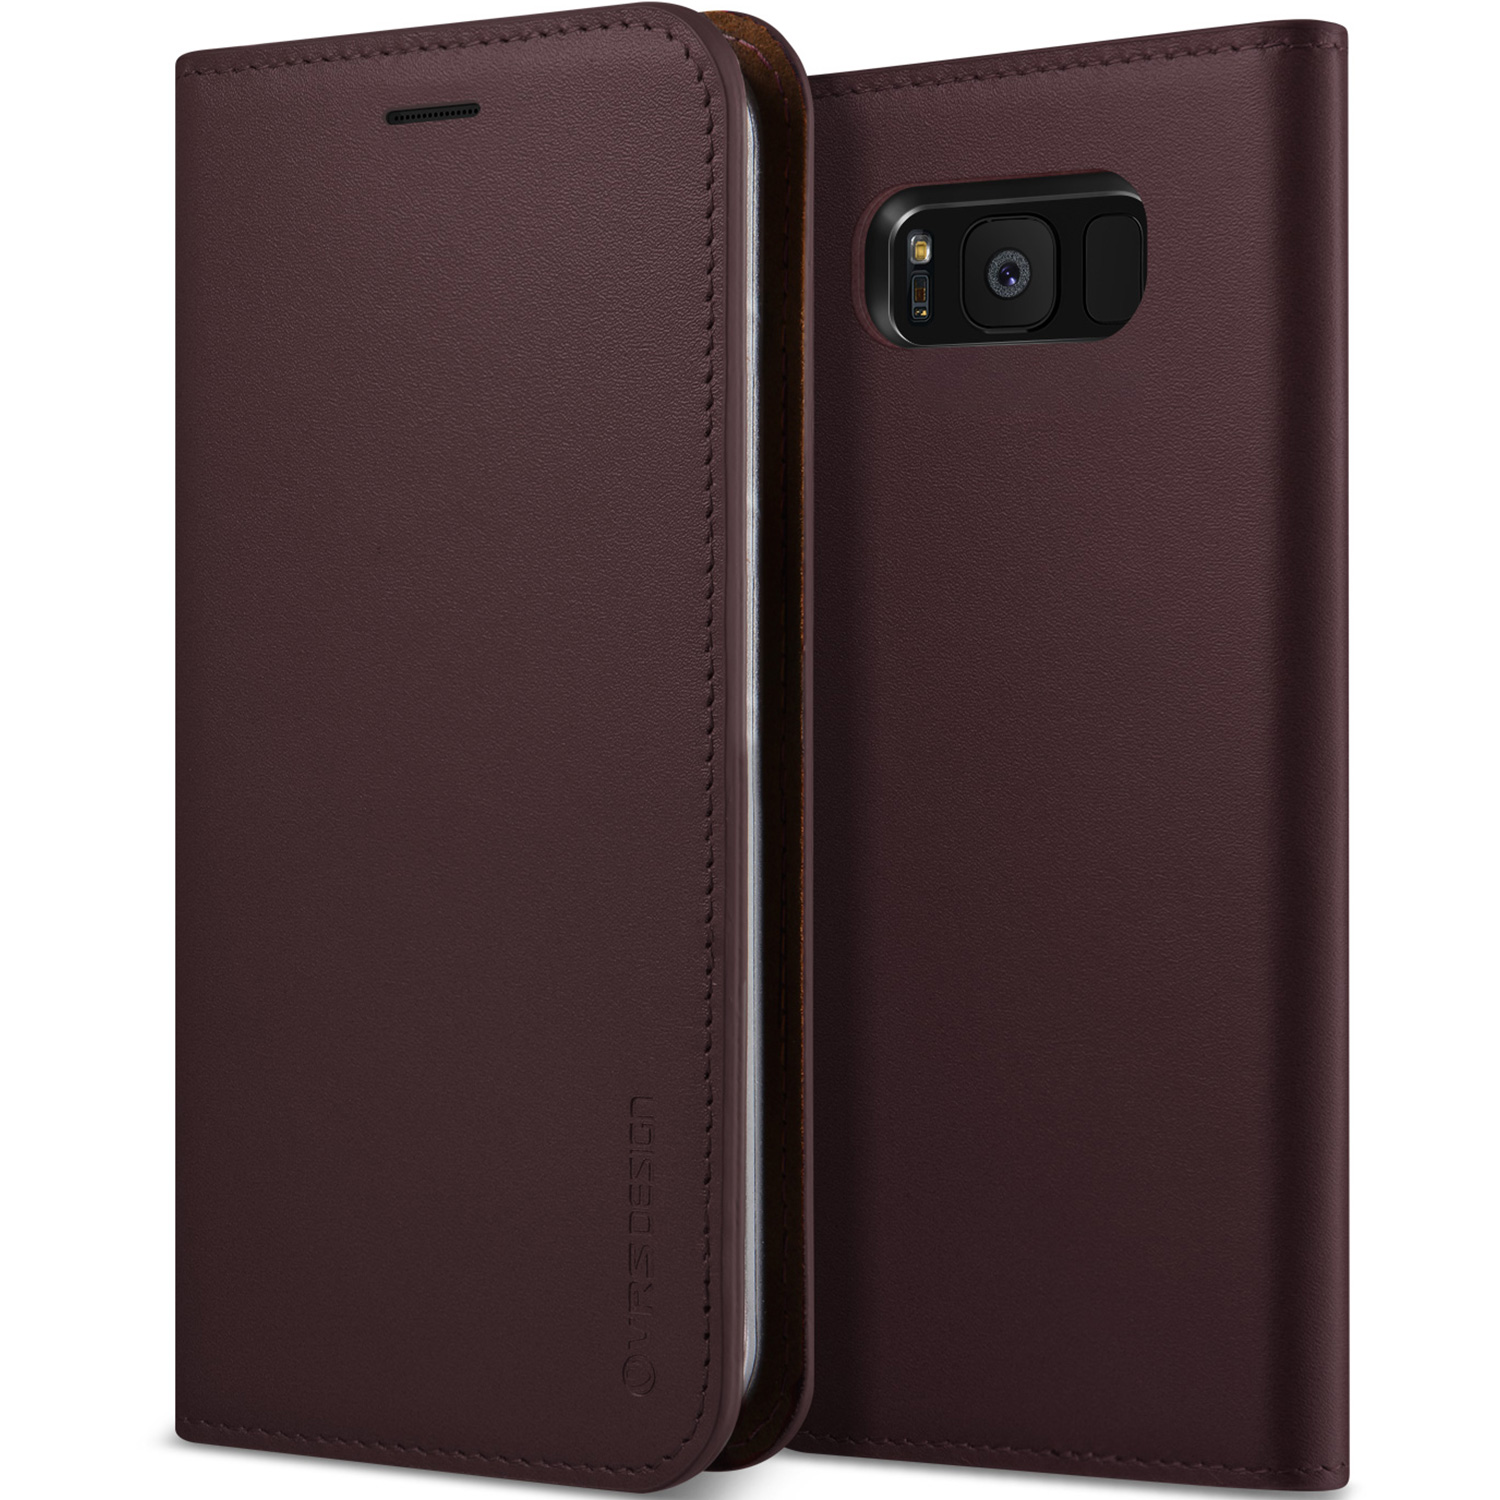 Samsung Galaxy S8 Case Cover   Slim Leather Wallet   VRS Design Genuine Leather Diary for Samsung Galaxy S8